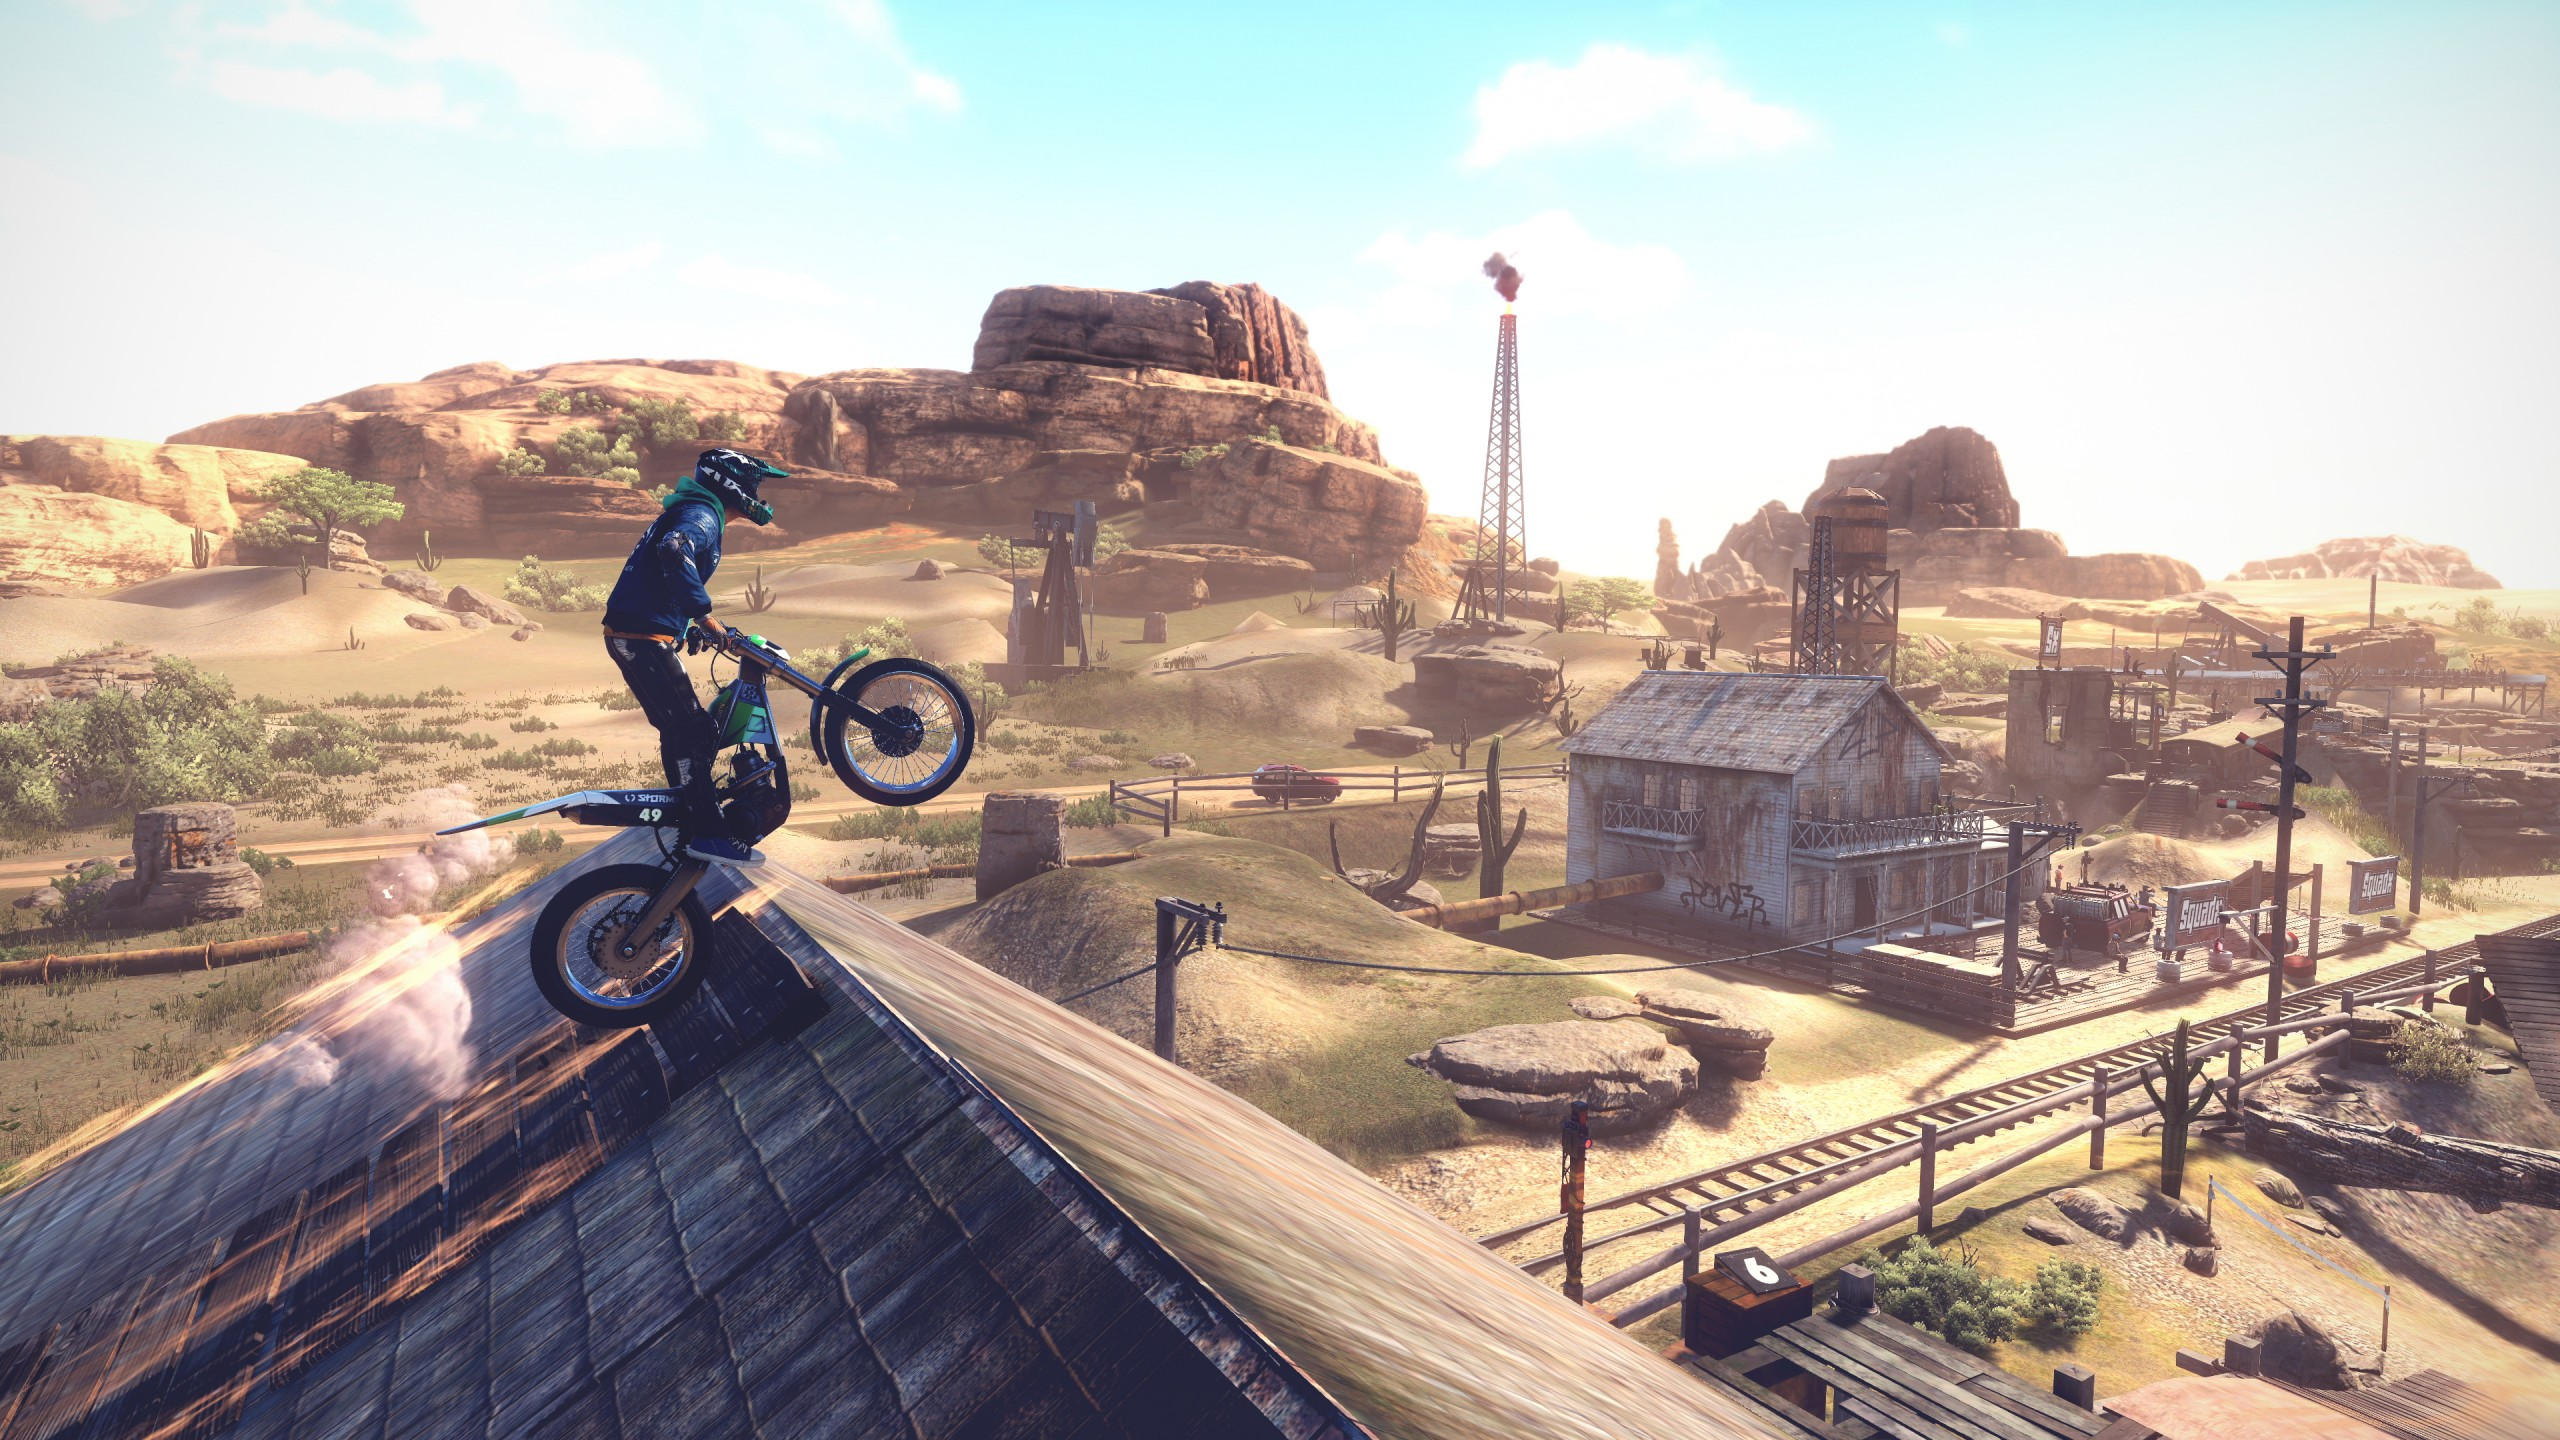 Wallpaper Trials Rising E3 2018 screenshot 4K Games 19108 2560x1440